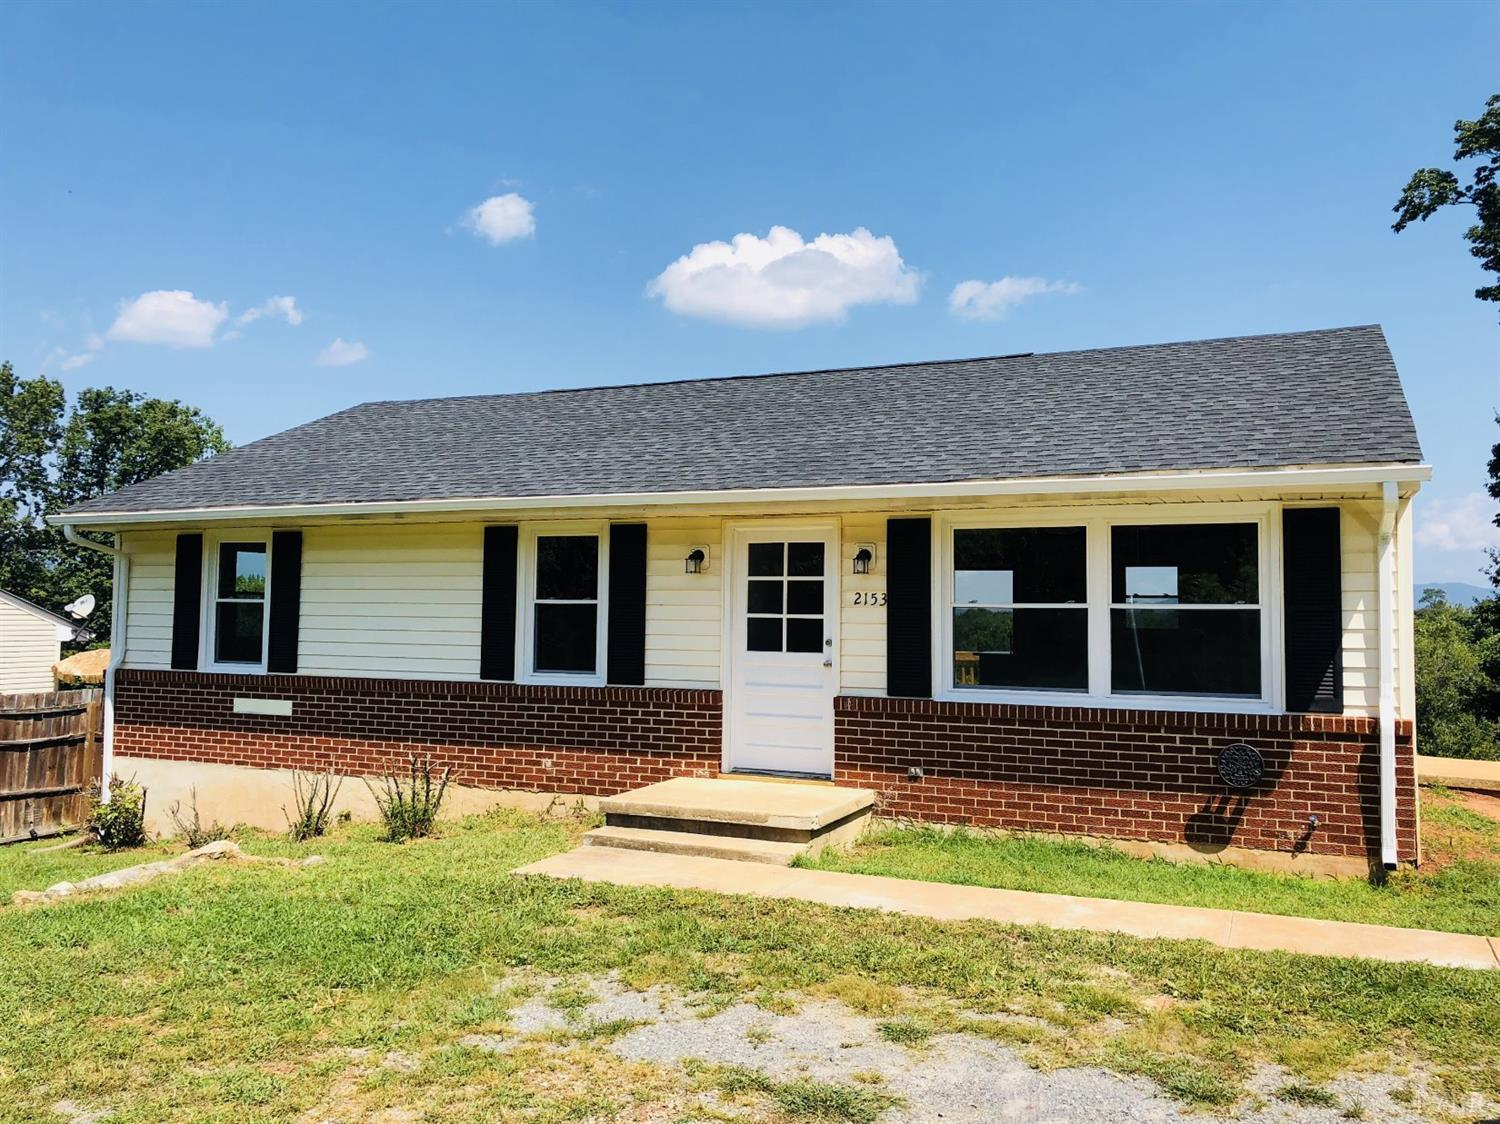 Photo for 2153 Mcghee Street, Bedford, VA 24523 (MLS # 314102)